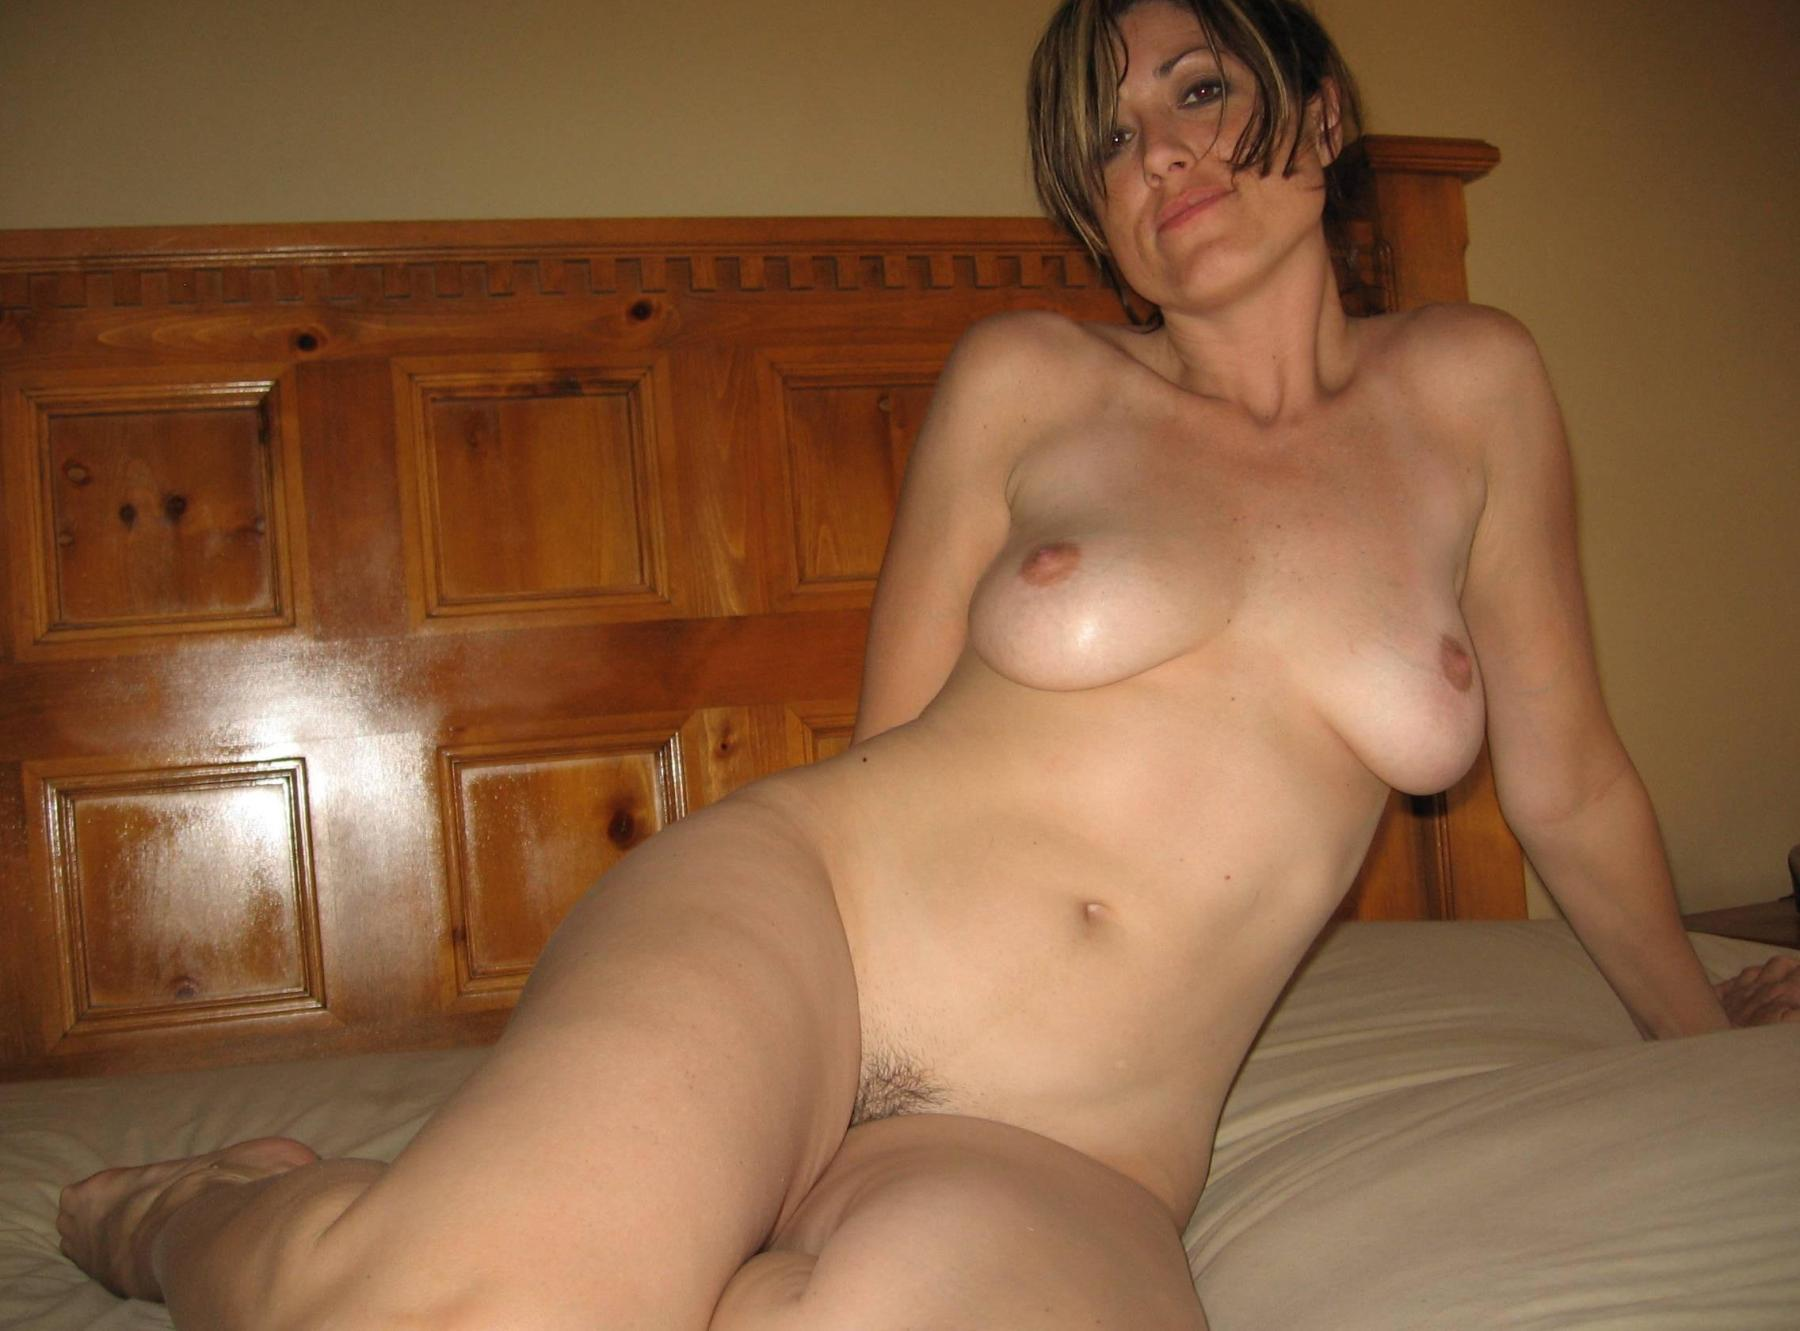 Beauty MILF does an amazing striptease where she shows off her goods. Amateur cougar flaunts shaved pussy and natural tits in the bed